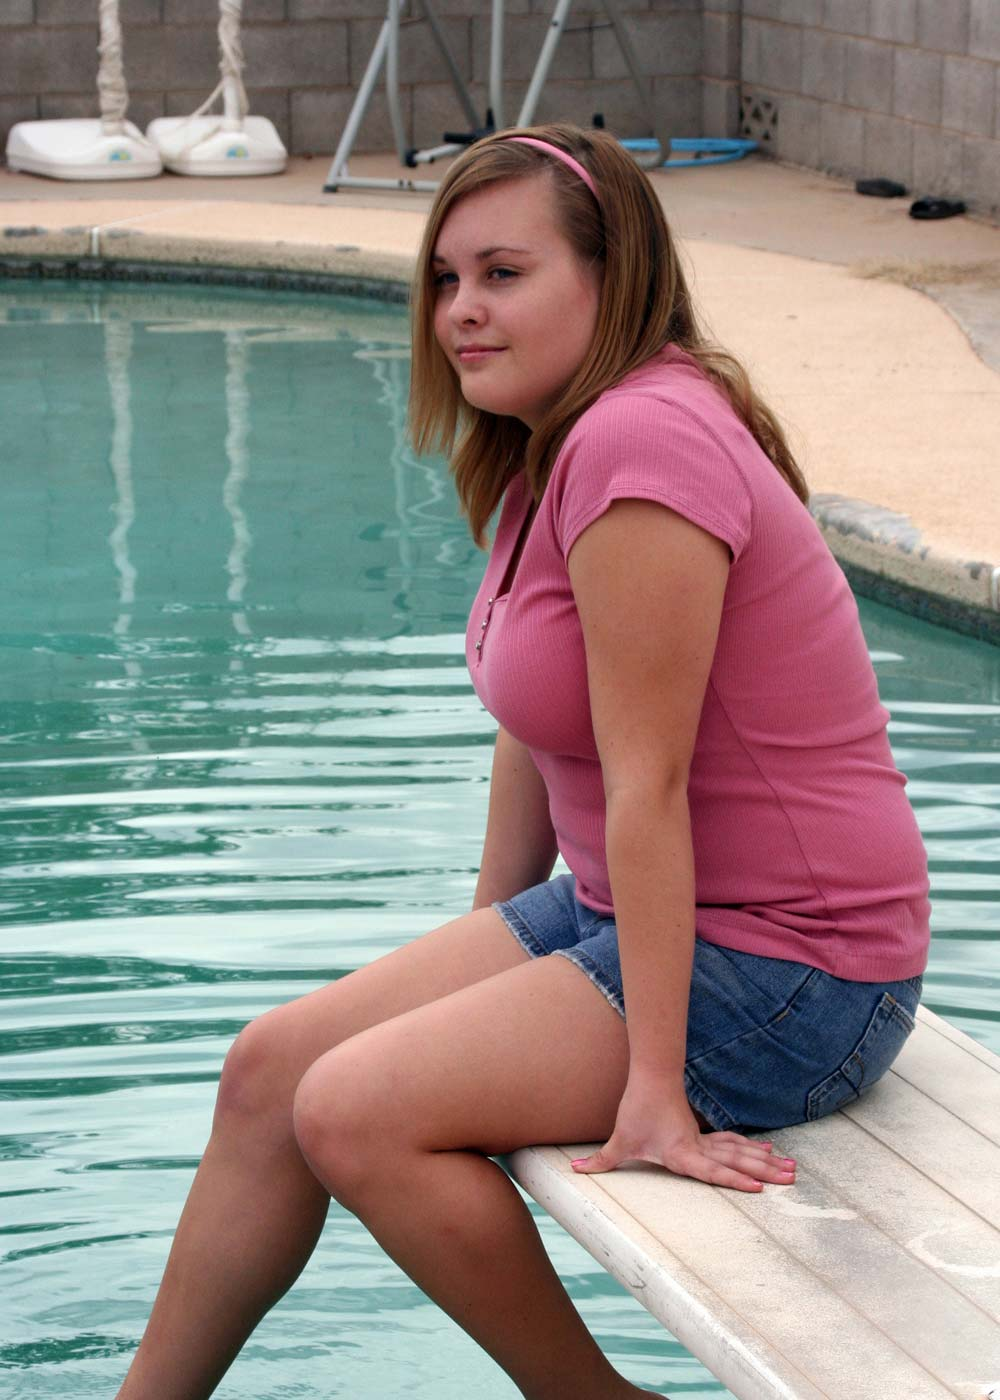 Fat girl sitting down on a pool image editing